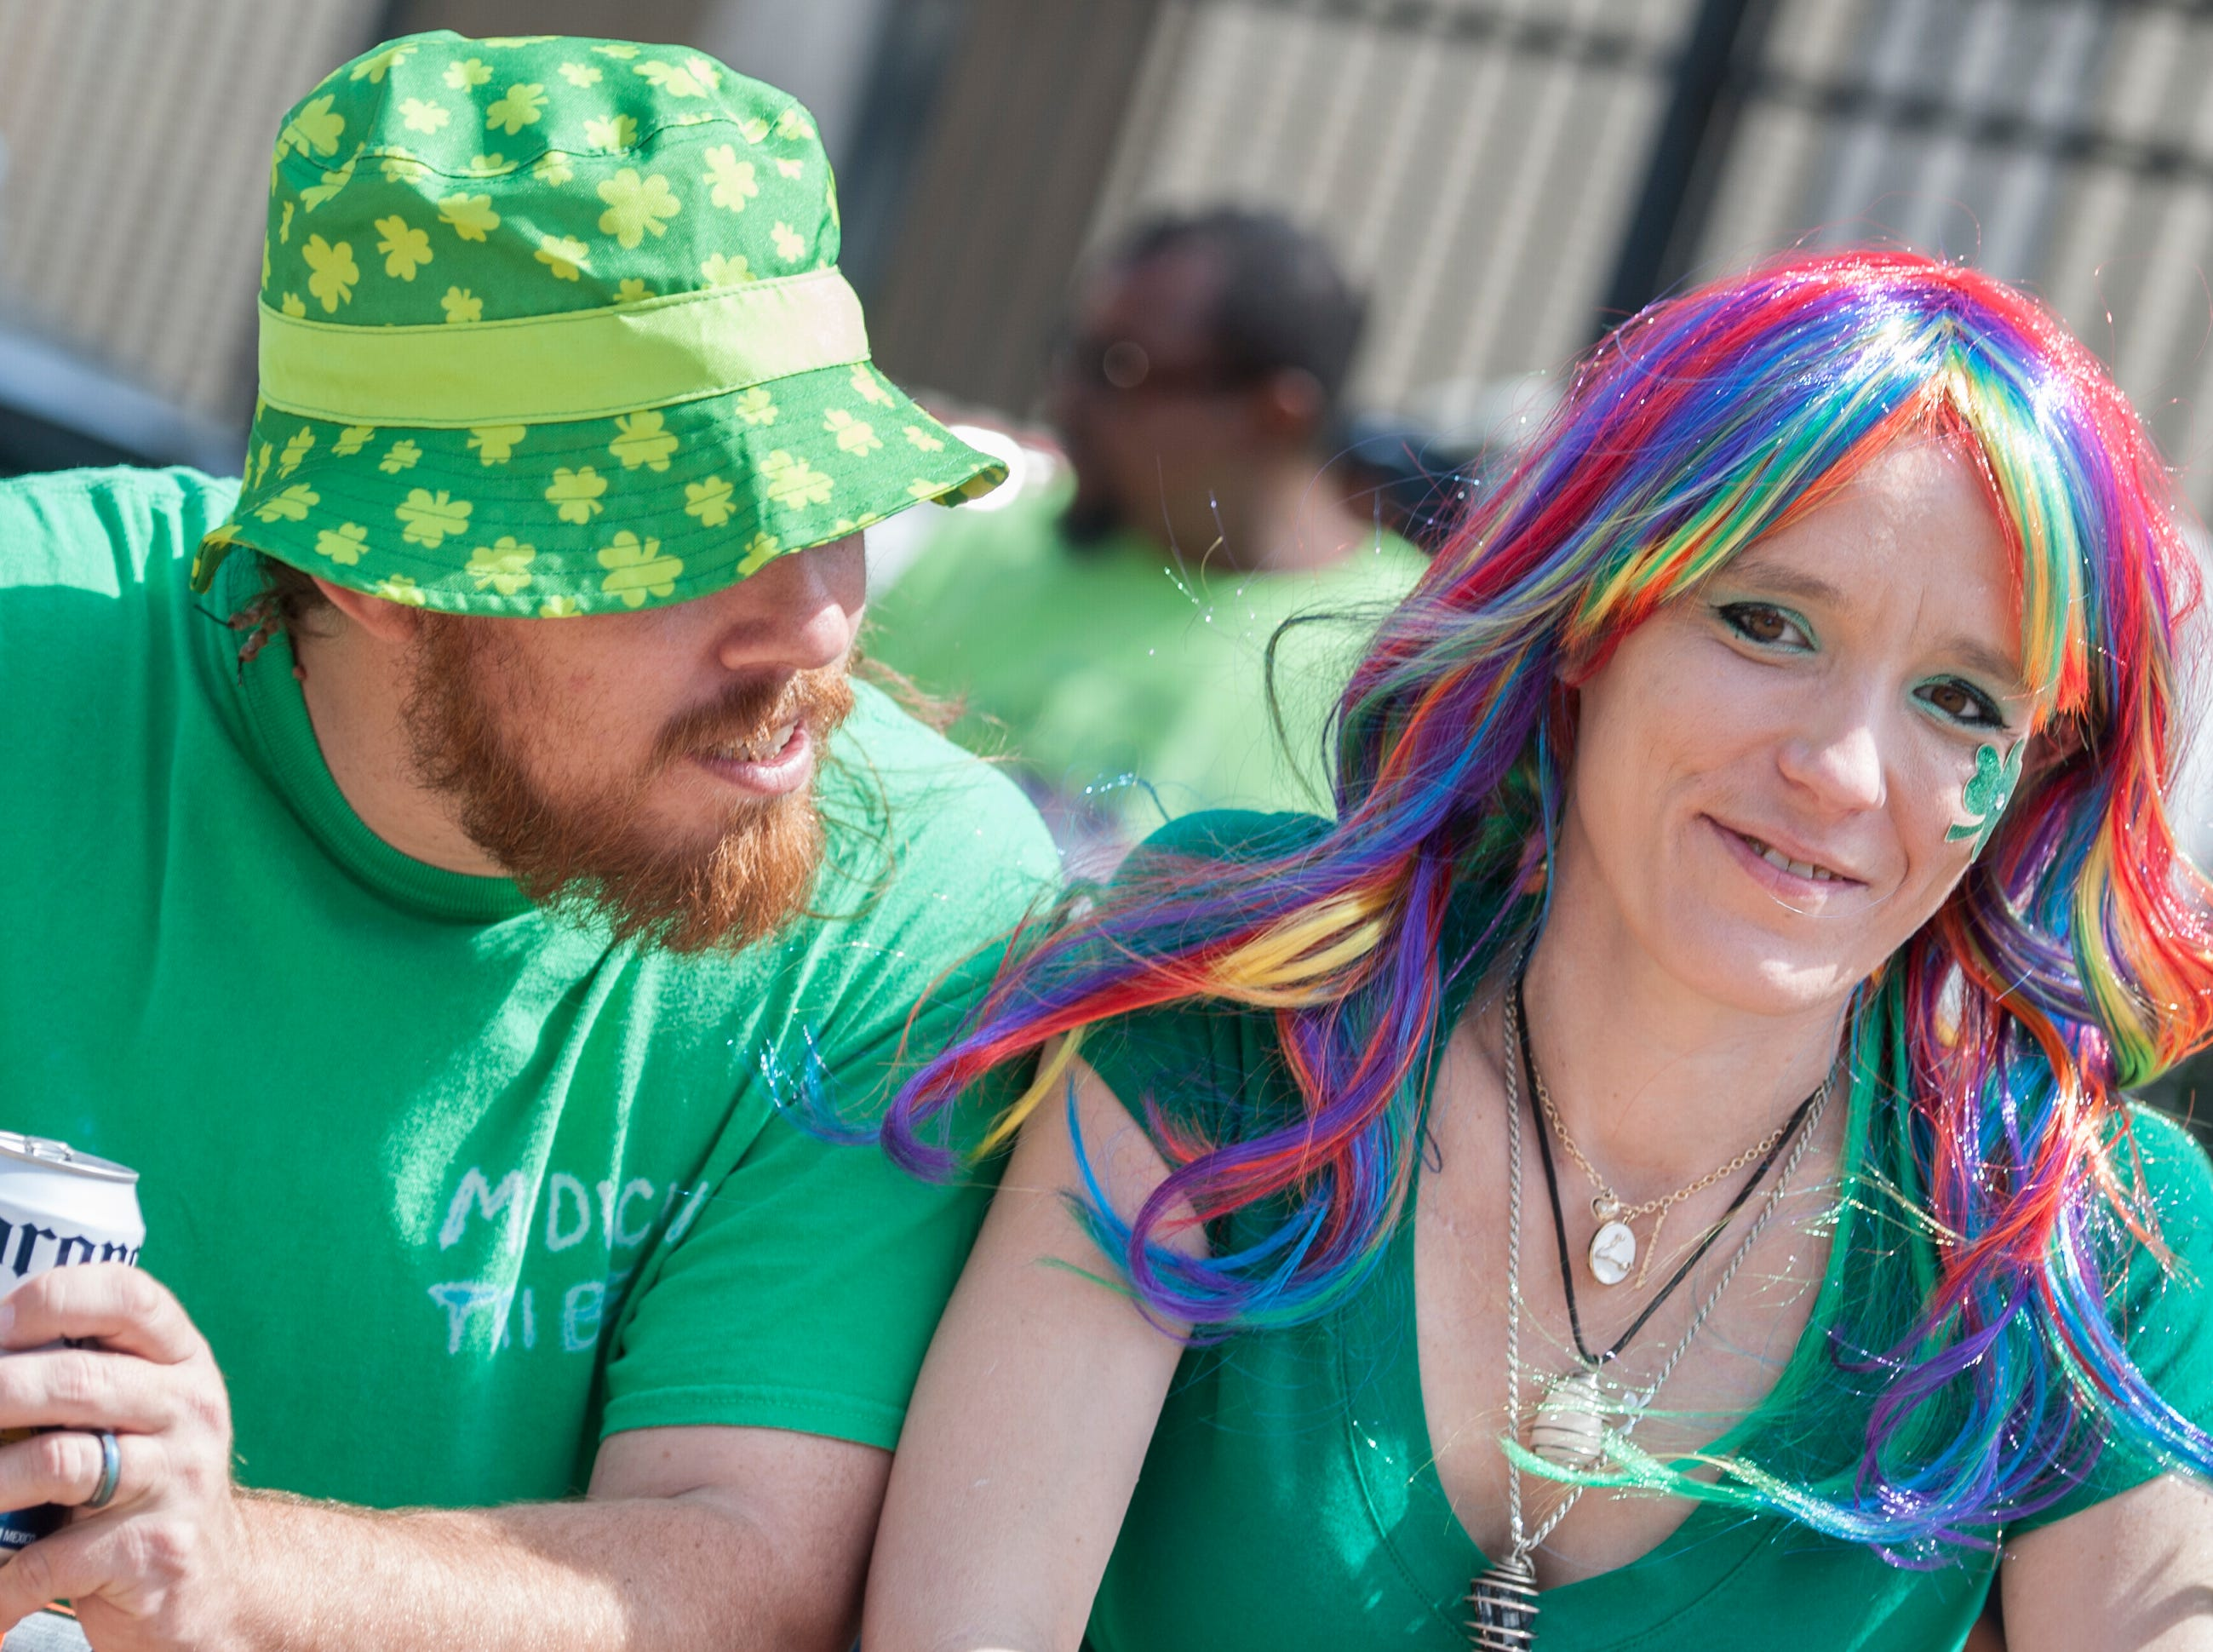 Madison residents Chris Chapman and Taffany McTaggary have been going to the Hal's St. Paddy's Day Parade for years and are dressed for the day.